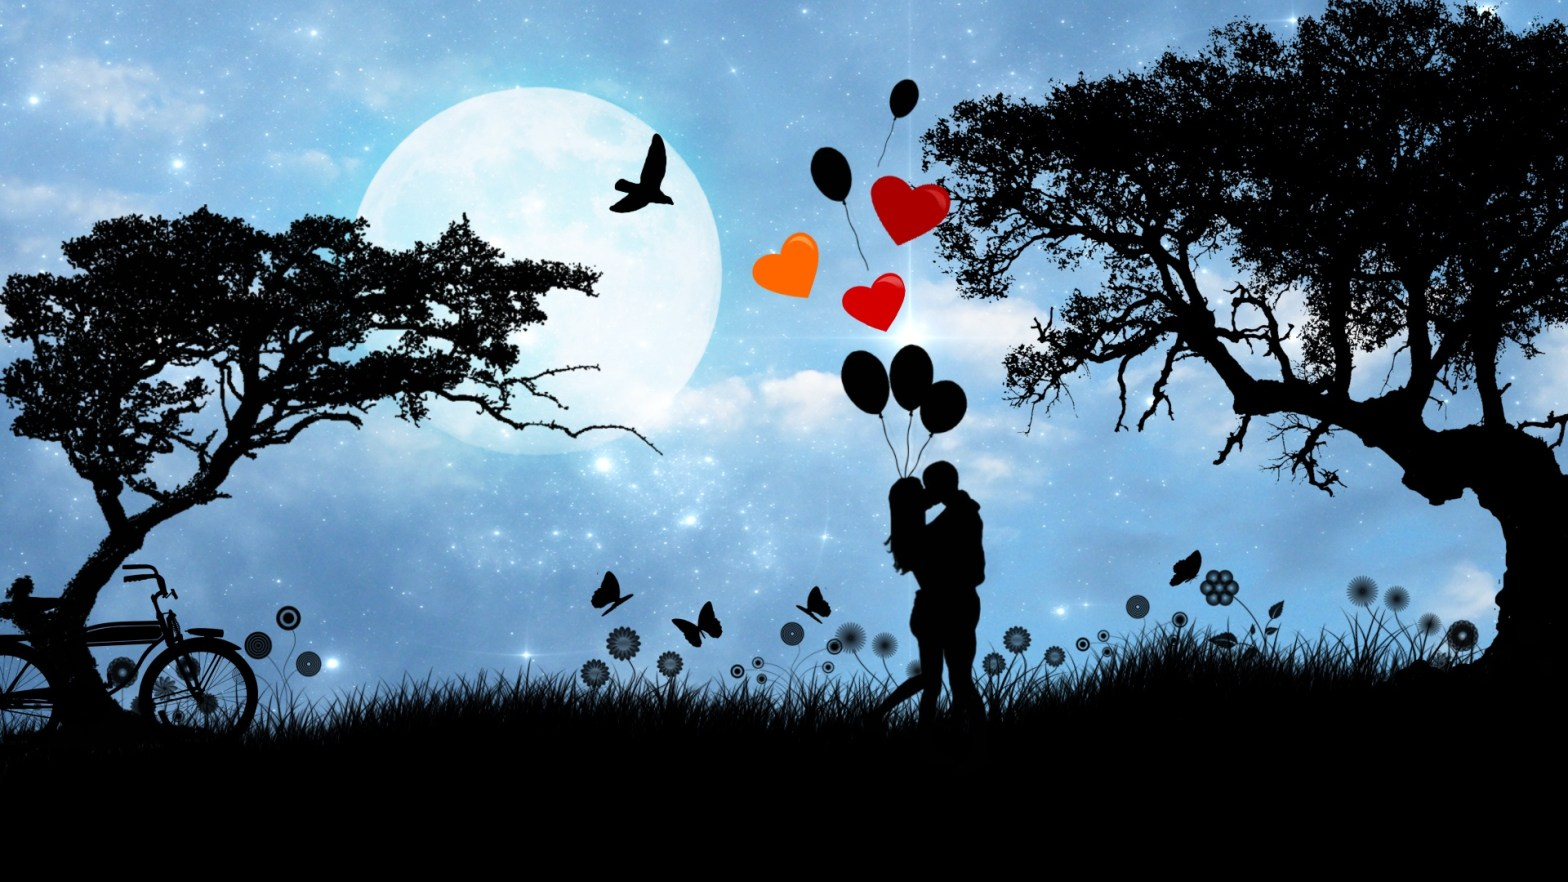 Silhouette of couple falling in love under a full moon